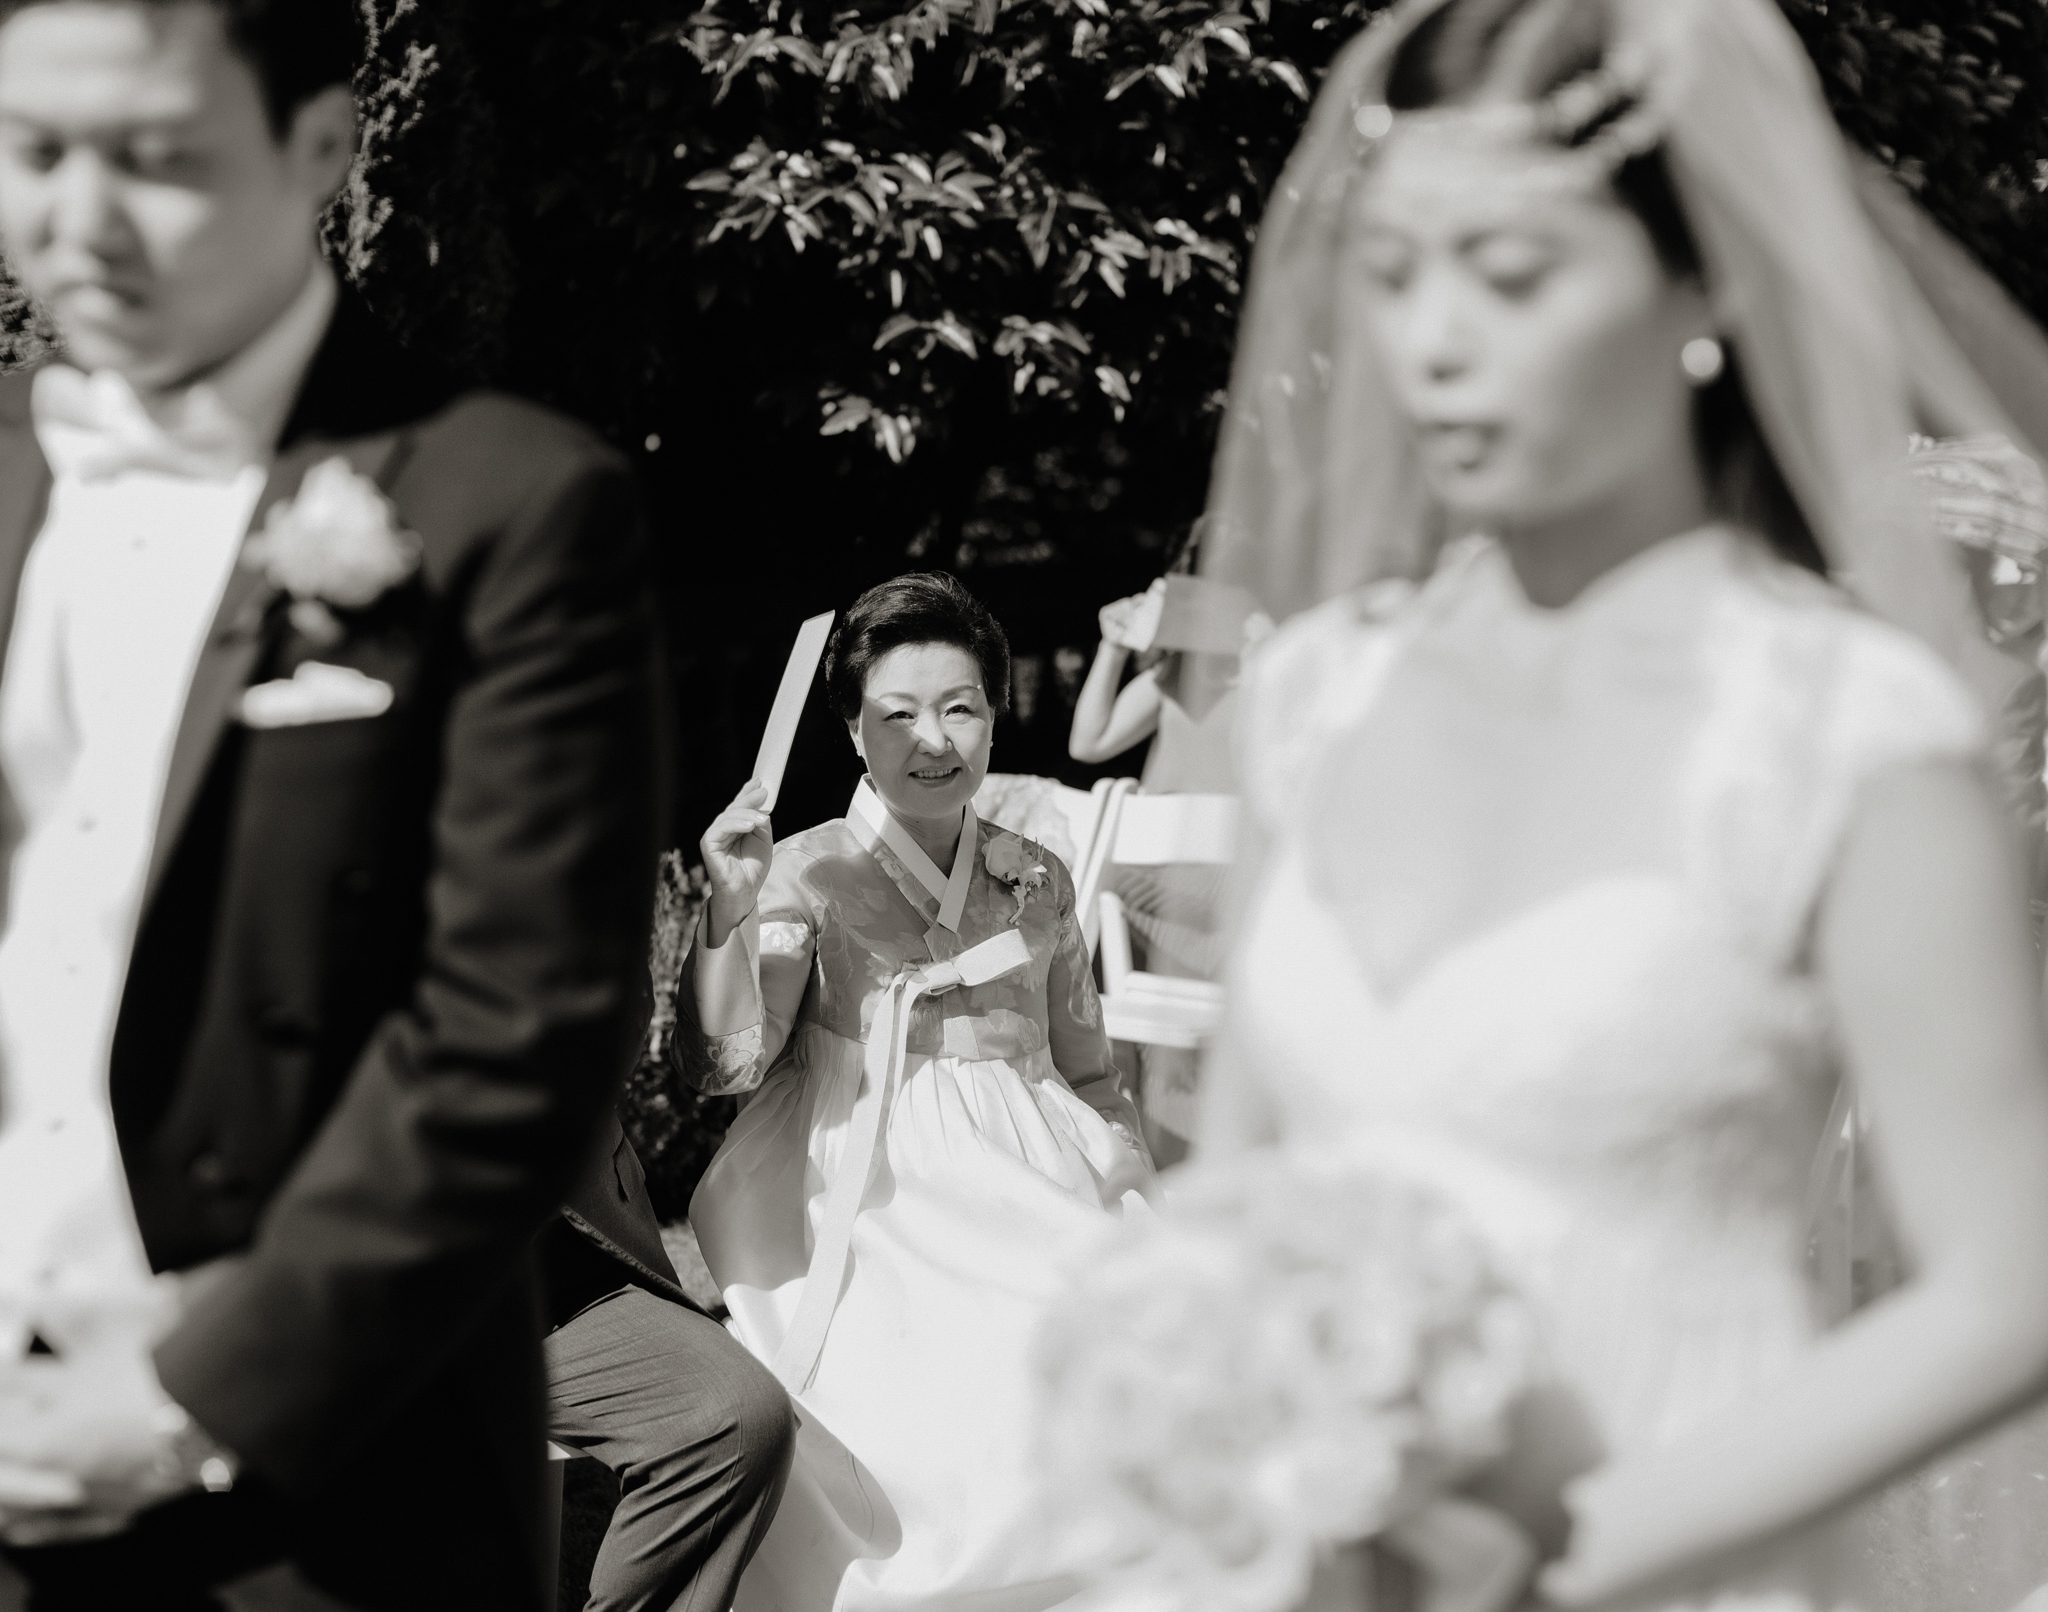 Mother watches bride and groom exchange vows in Korean wedding ceremony